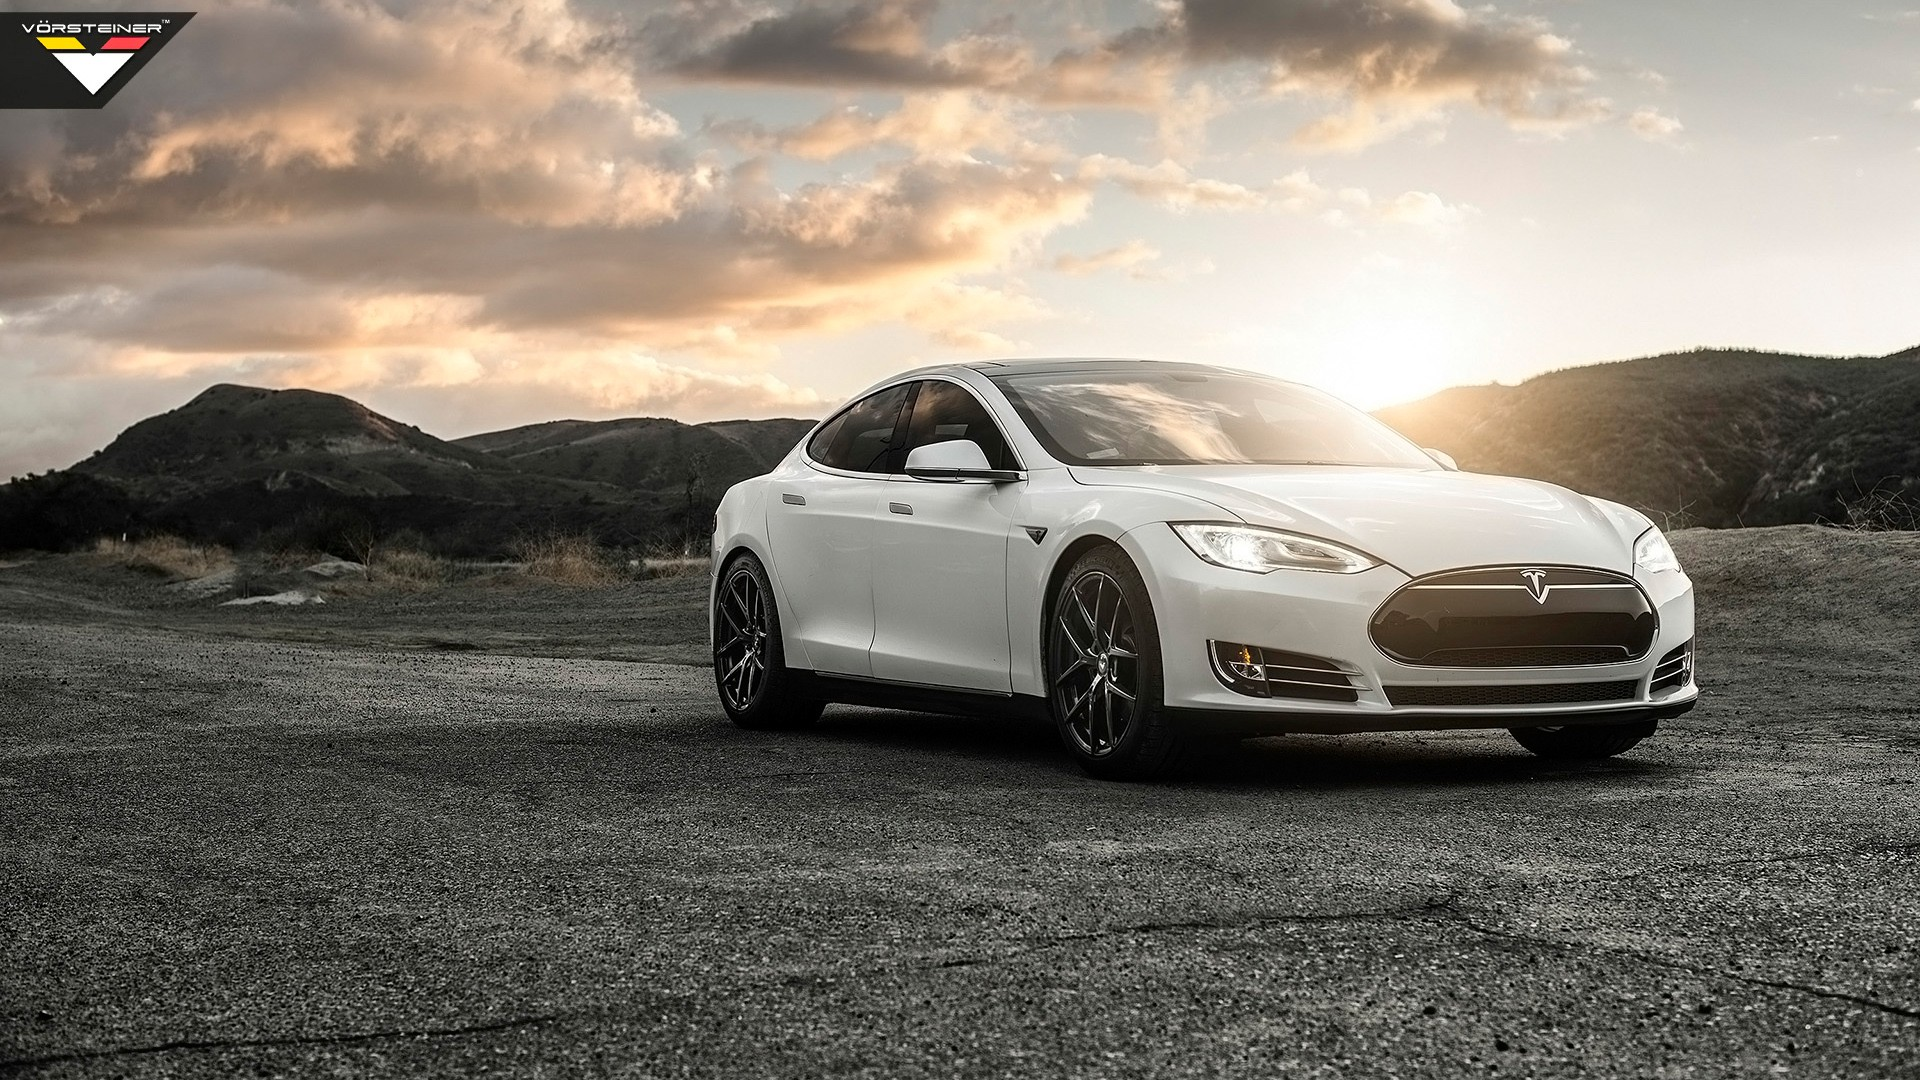 Chevrolet Latest Models >> 2014 Vorsteiner Tesla Model S P85 Wallpaper | HD Car Wallpapers | ID #4487